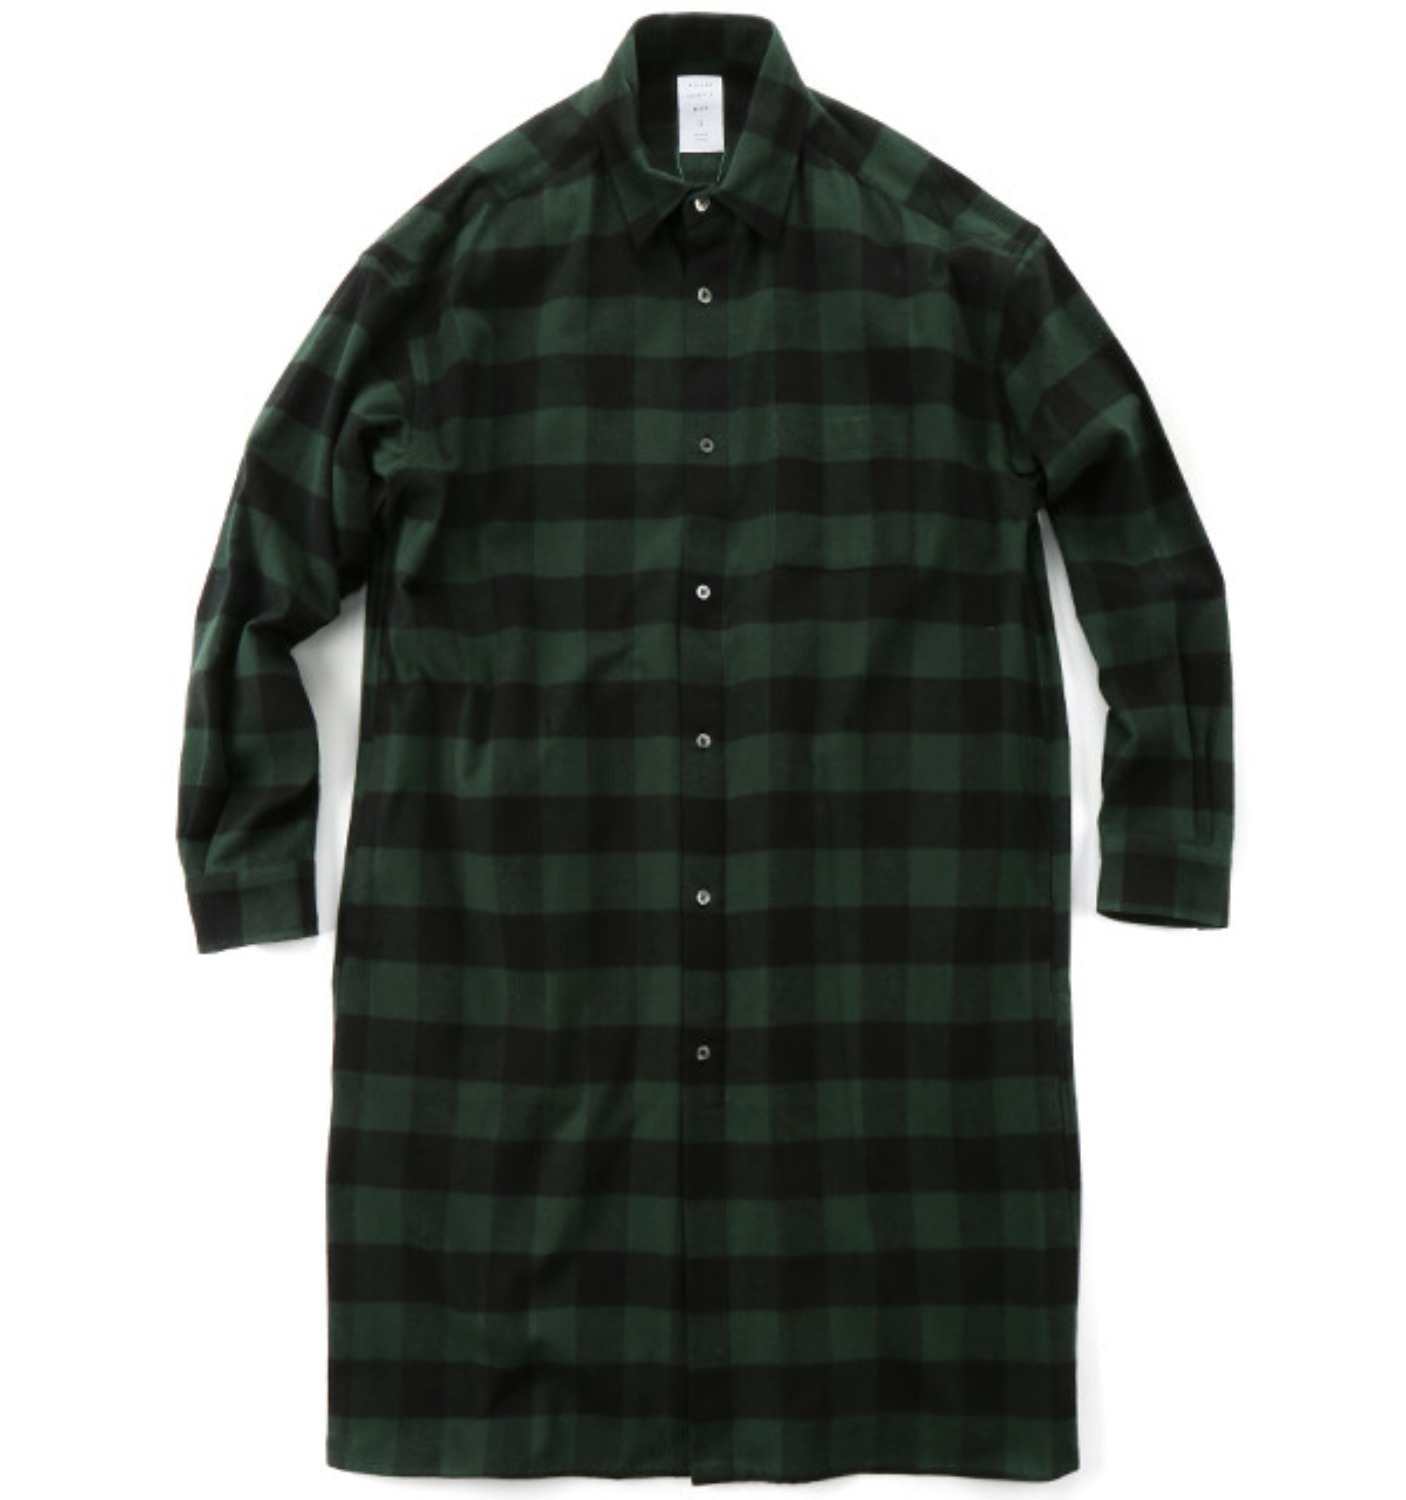 BUFFALO CHECK LONG SHIRT GREEN CHECK